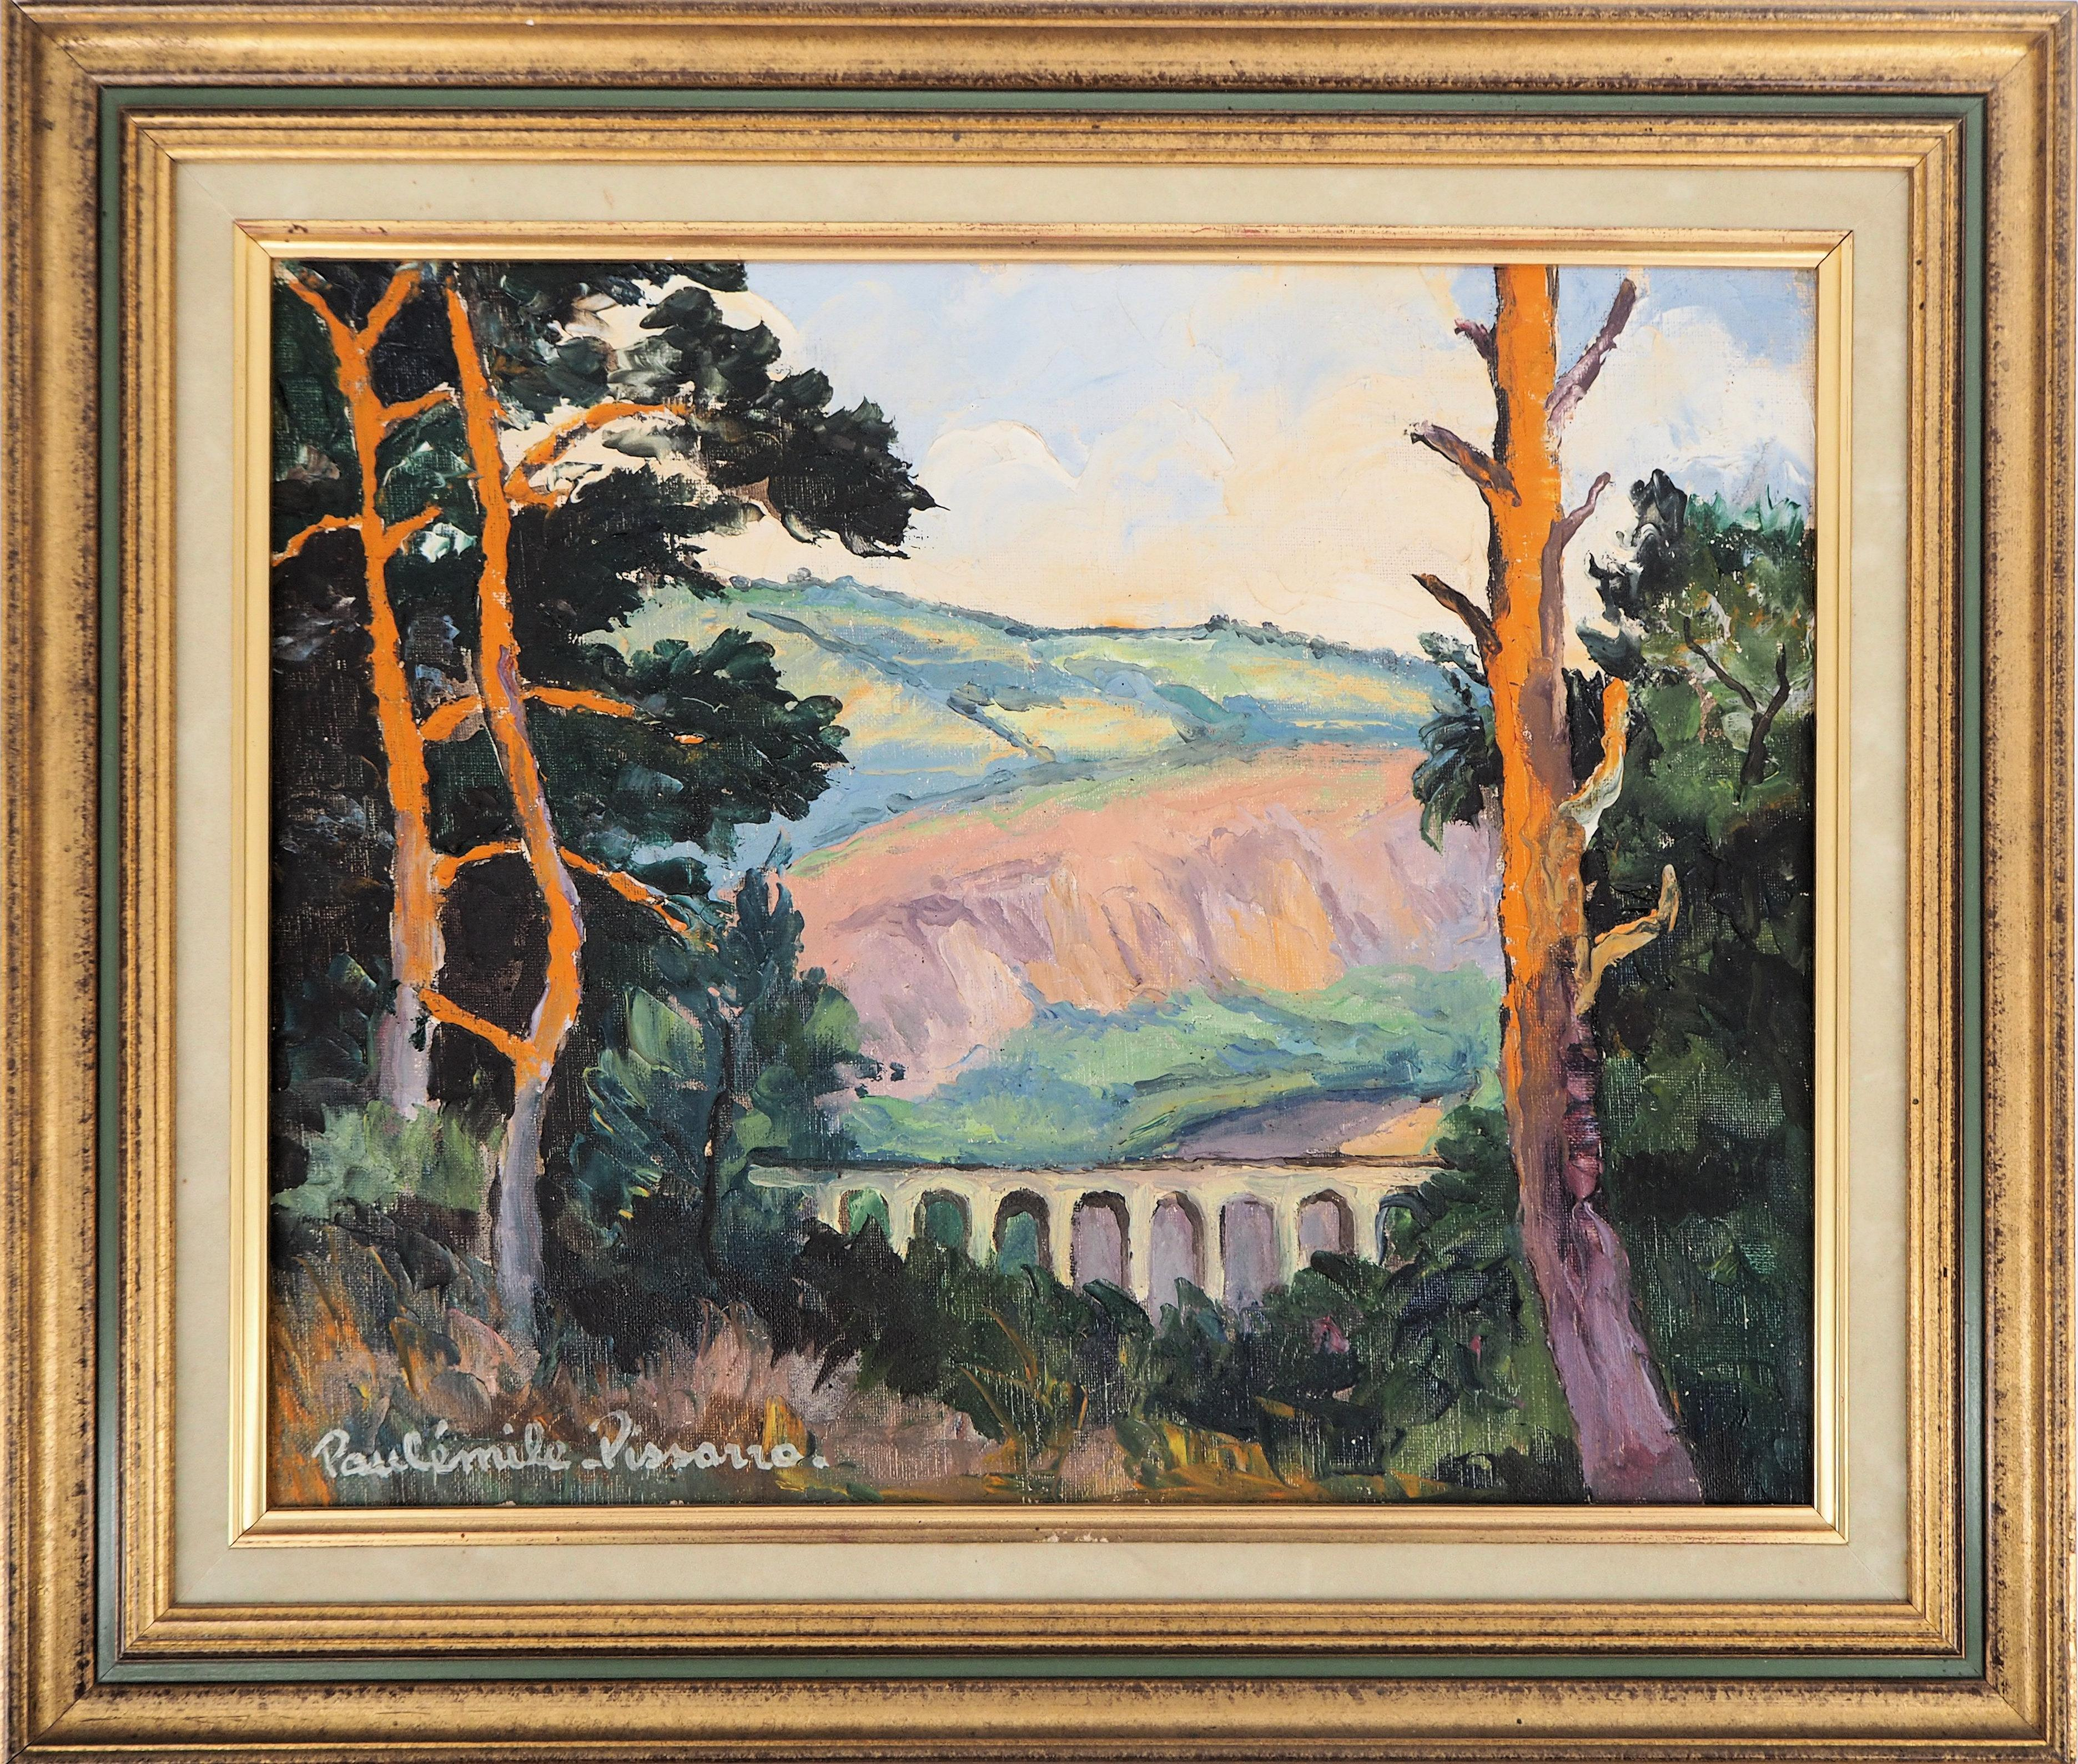 Viaduct in Normandy : Tribute to Cézanne - Original oil on canvas, Handsigned